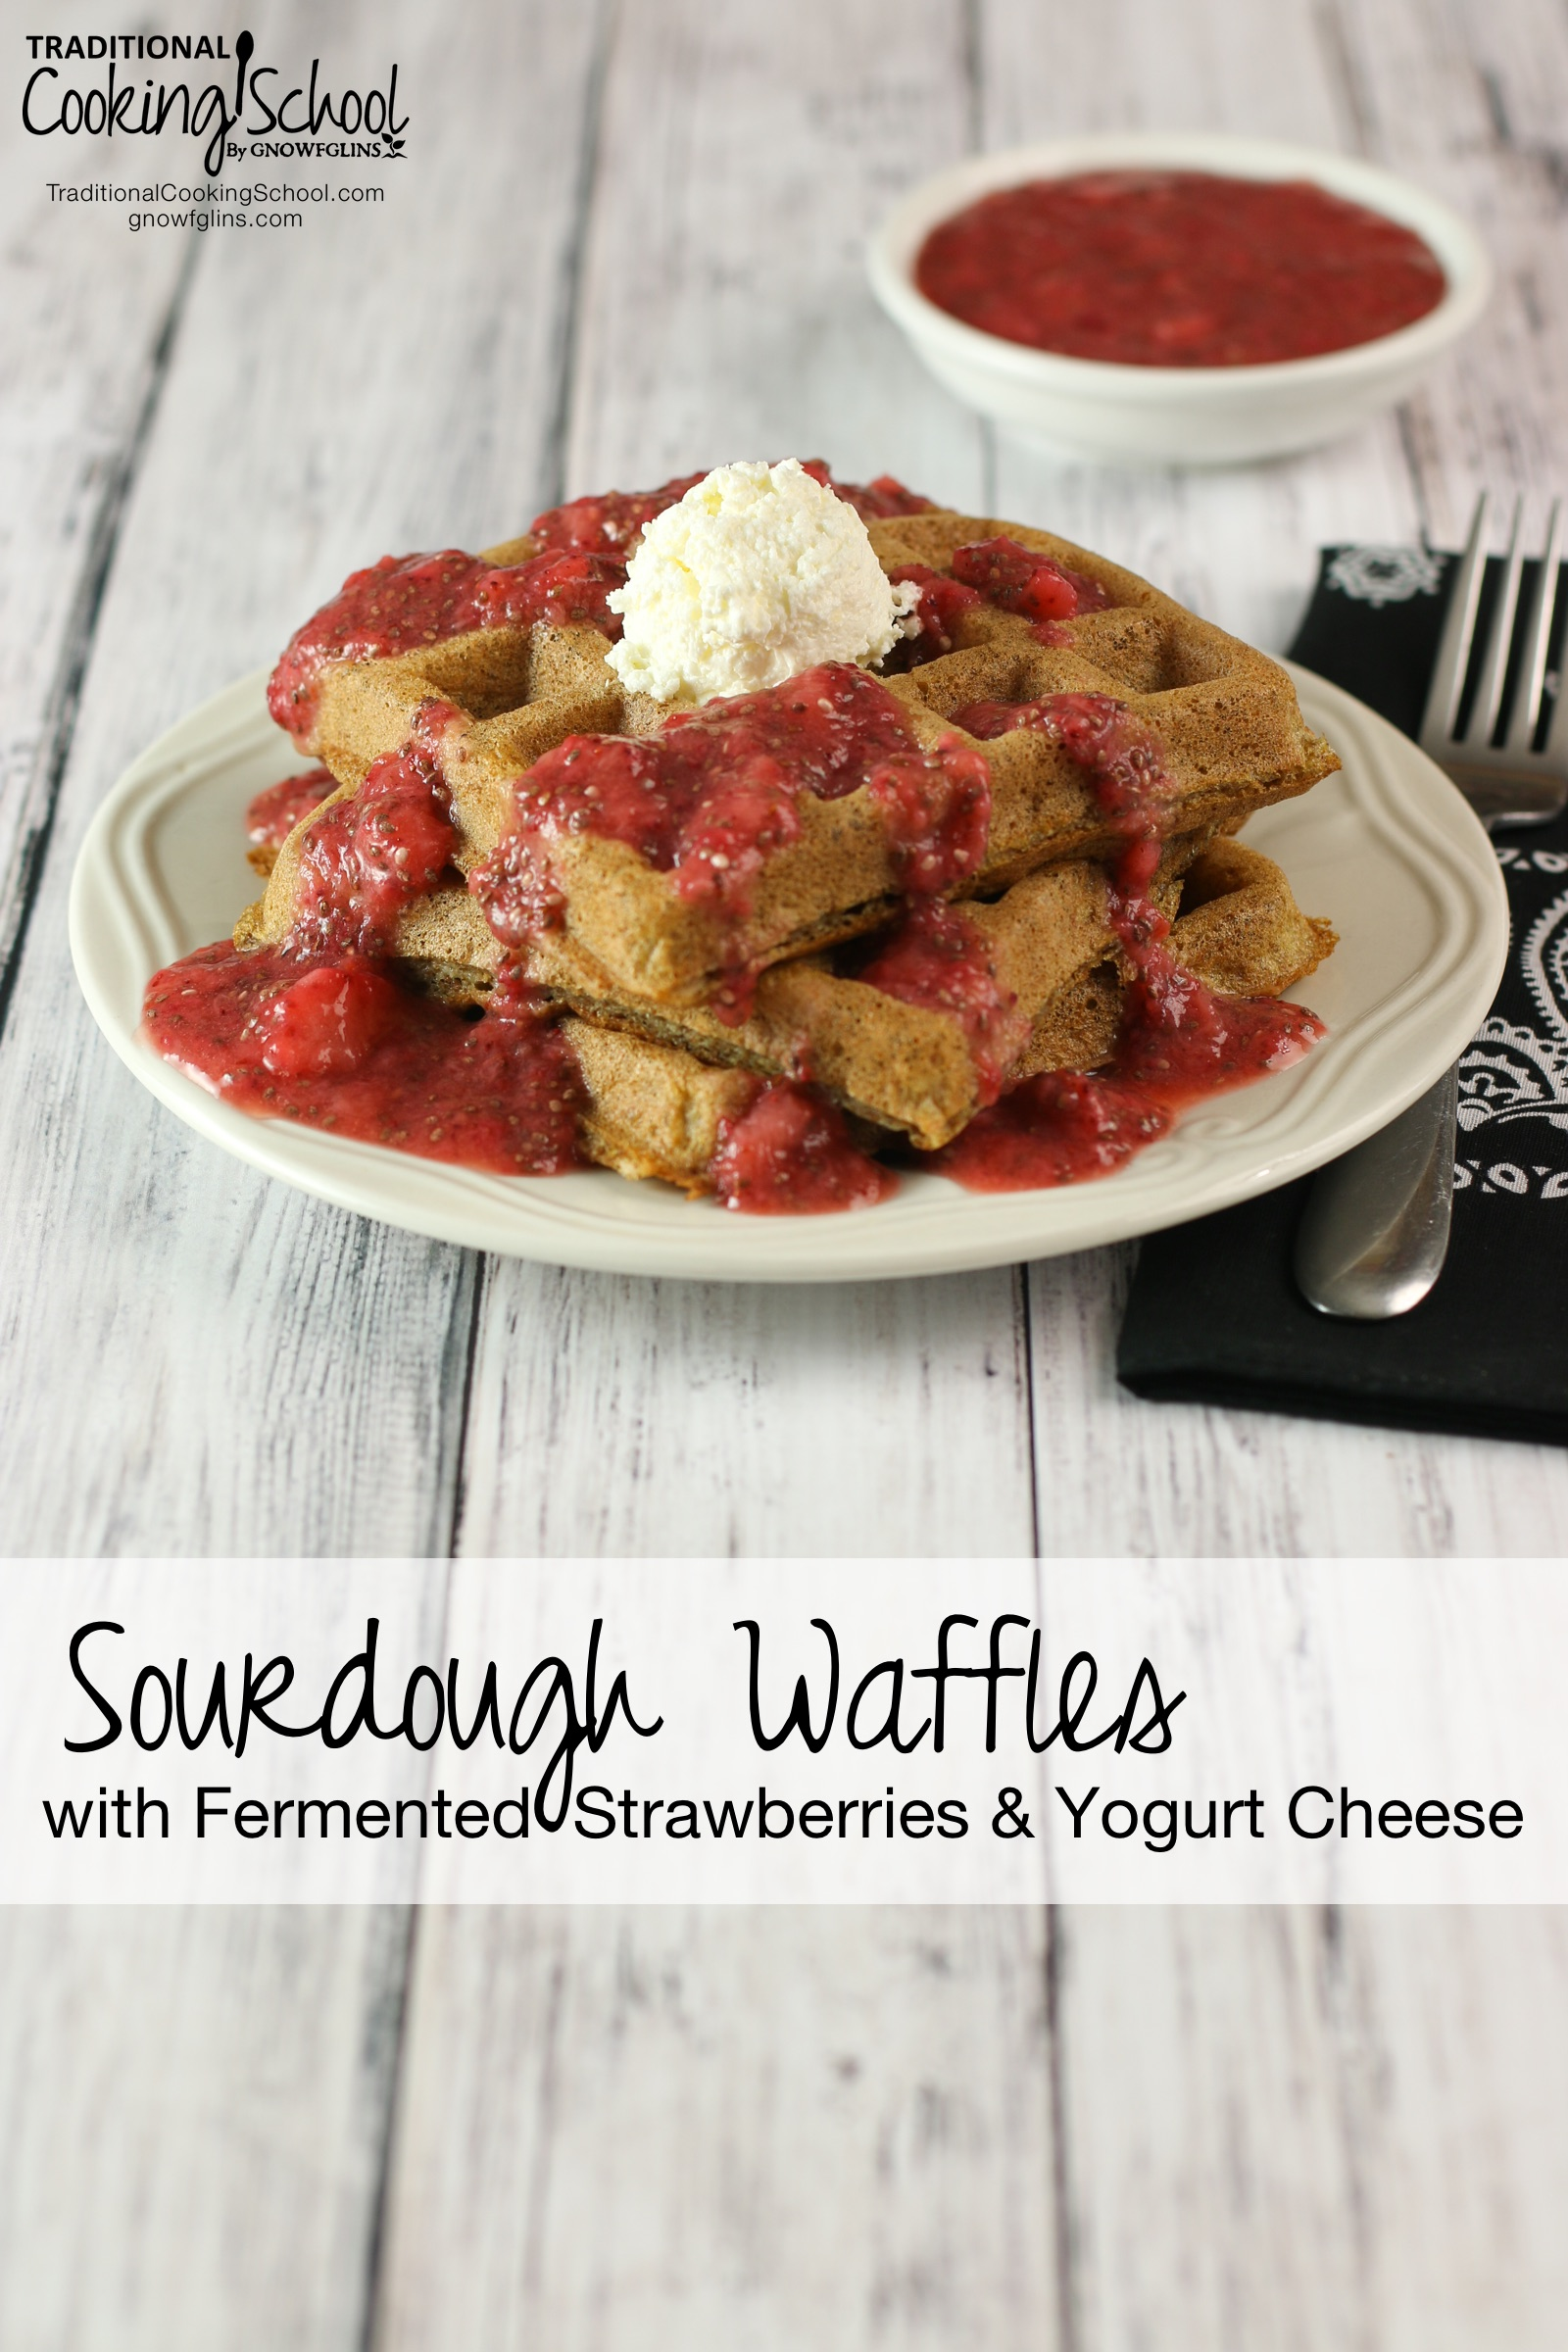 Sourdough Waffles With Fermented Strawberries & Yogurt Cheese | We've eaten hotel breakfasts in all of our past moves. Those fluffy hotel waffles are so tempting! But when we eat them, my littles complain of belly aches, and I feel frumpy and sluggish. We solved our waffle cravings by making them at home with nourishing ingredients. Fermented berries and yogurt cheese top fluffy, slightly crisp sourdough waffles –- a scrumptious breakfast for any morning! | TraditionalCookingSchool.com